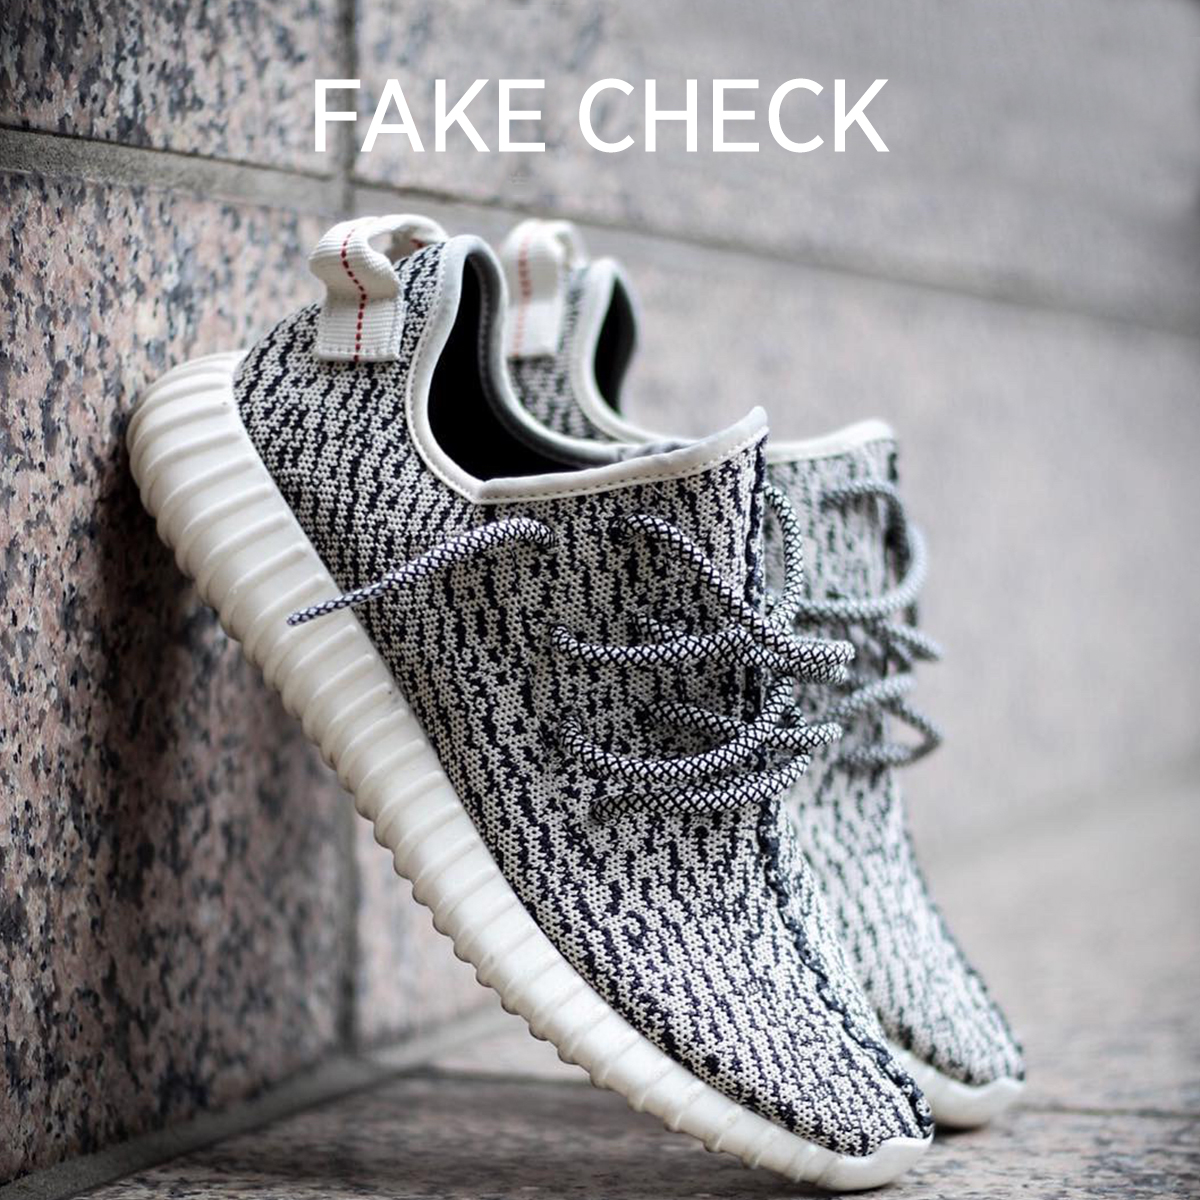 8a622728e24c2 Klekt shows you how To Spot A Yeezy 350  Turtle Dove  Fake